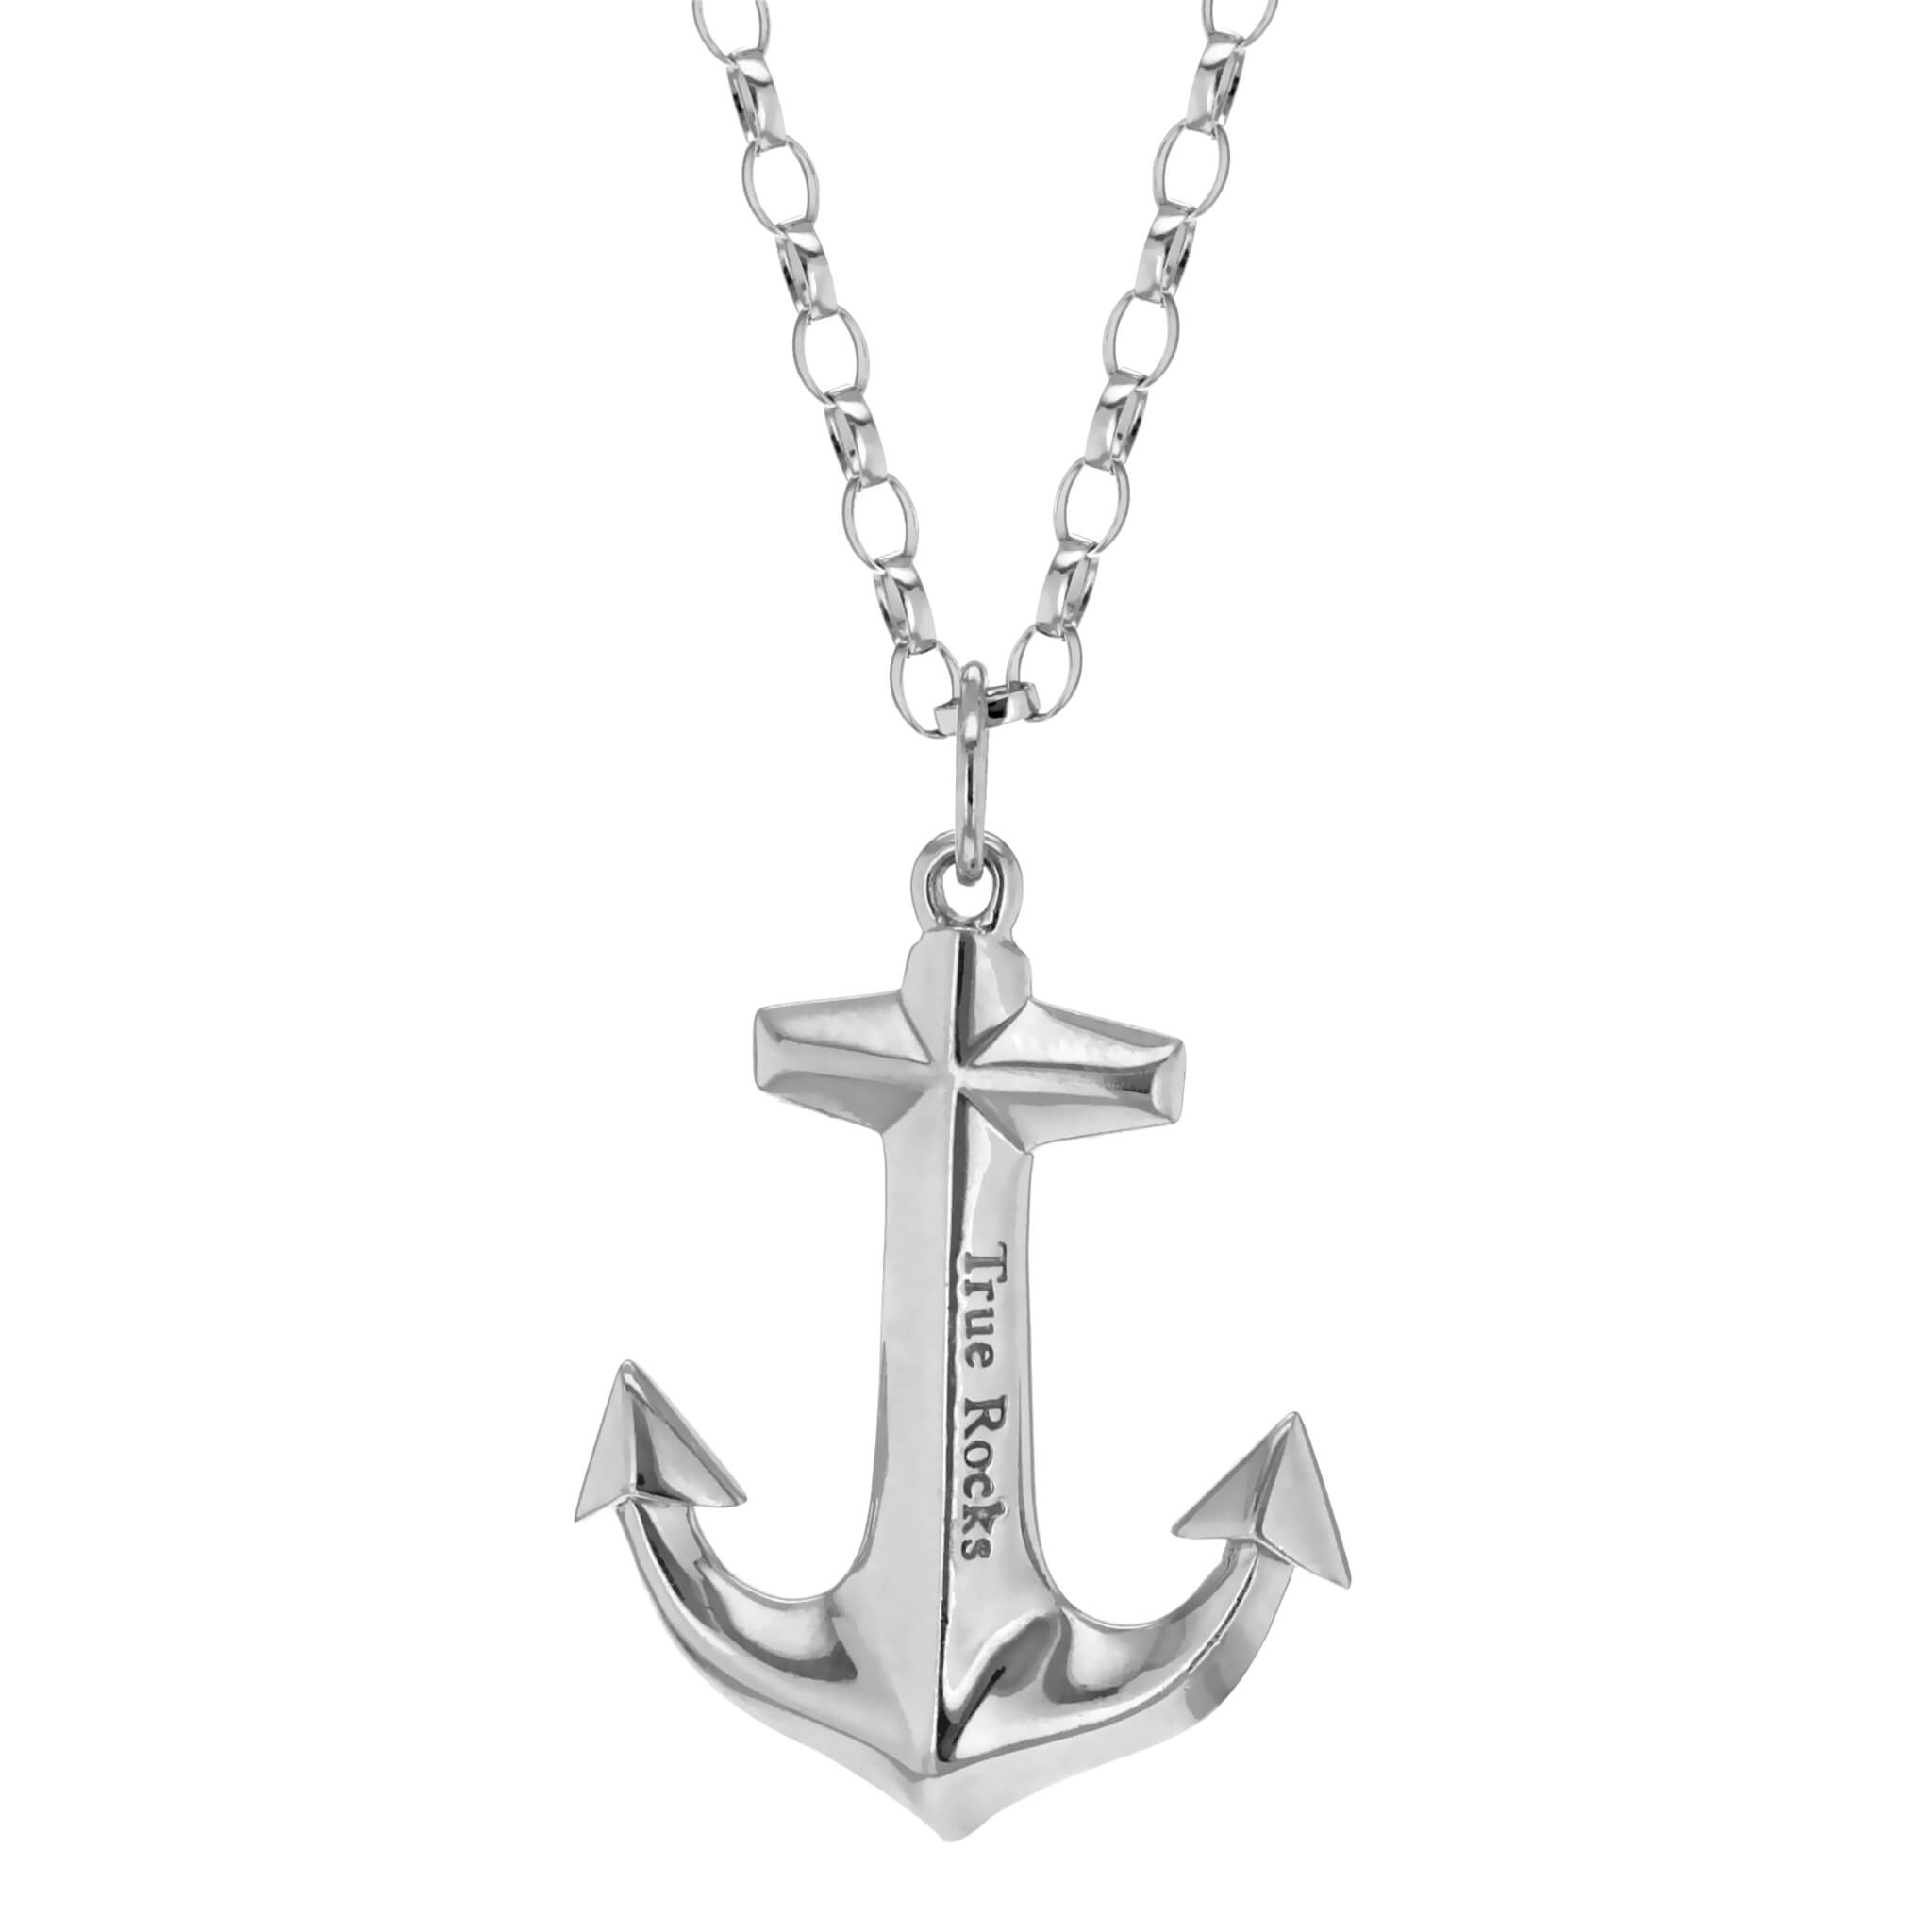 Anchors from our Chunky Collection. Also available in mini pendants & charms